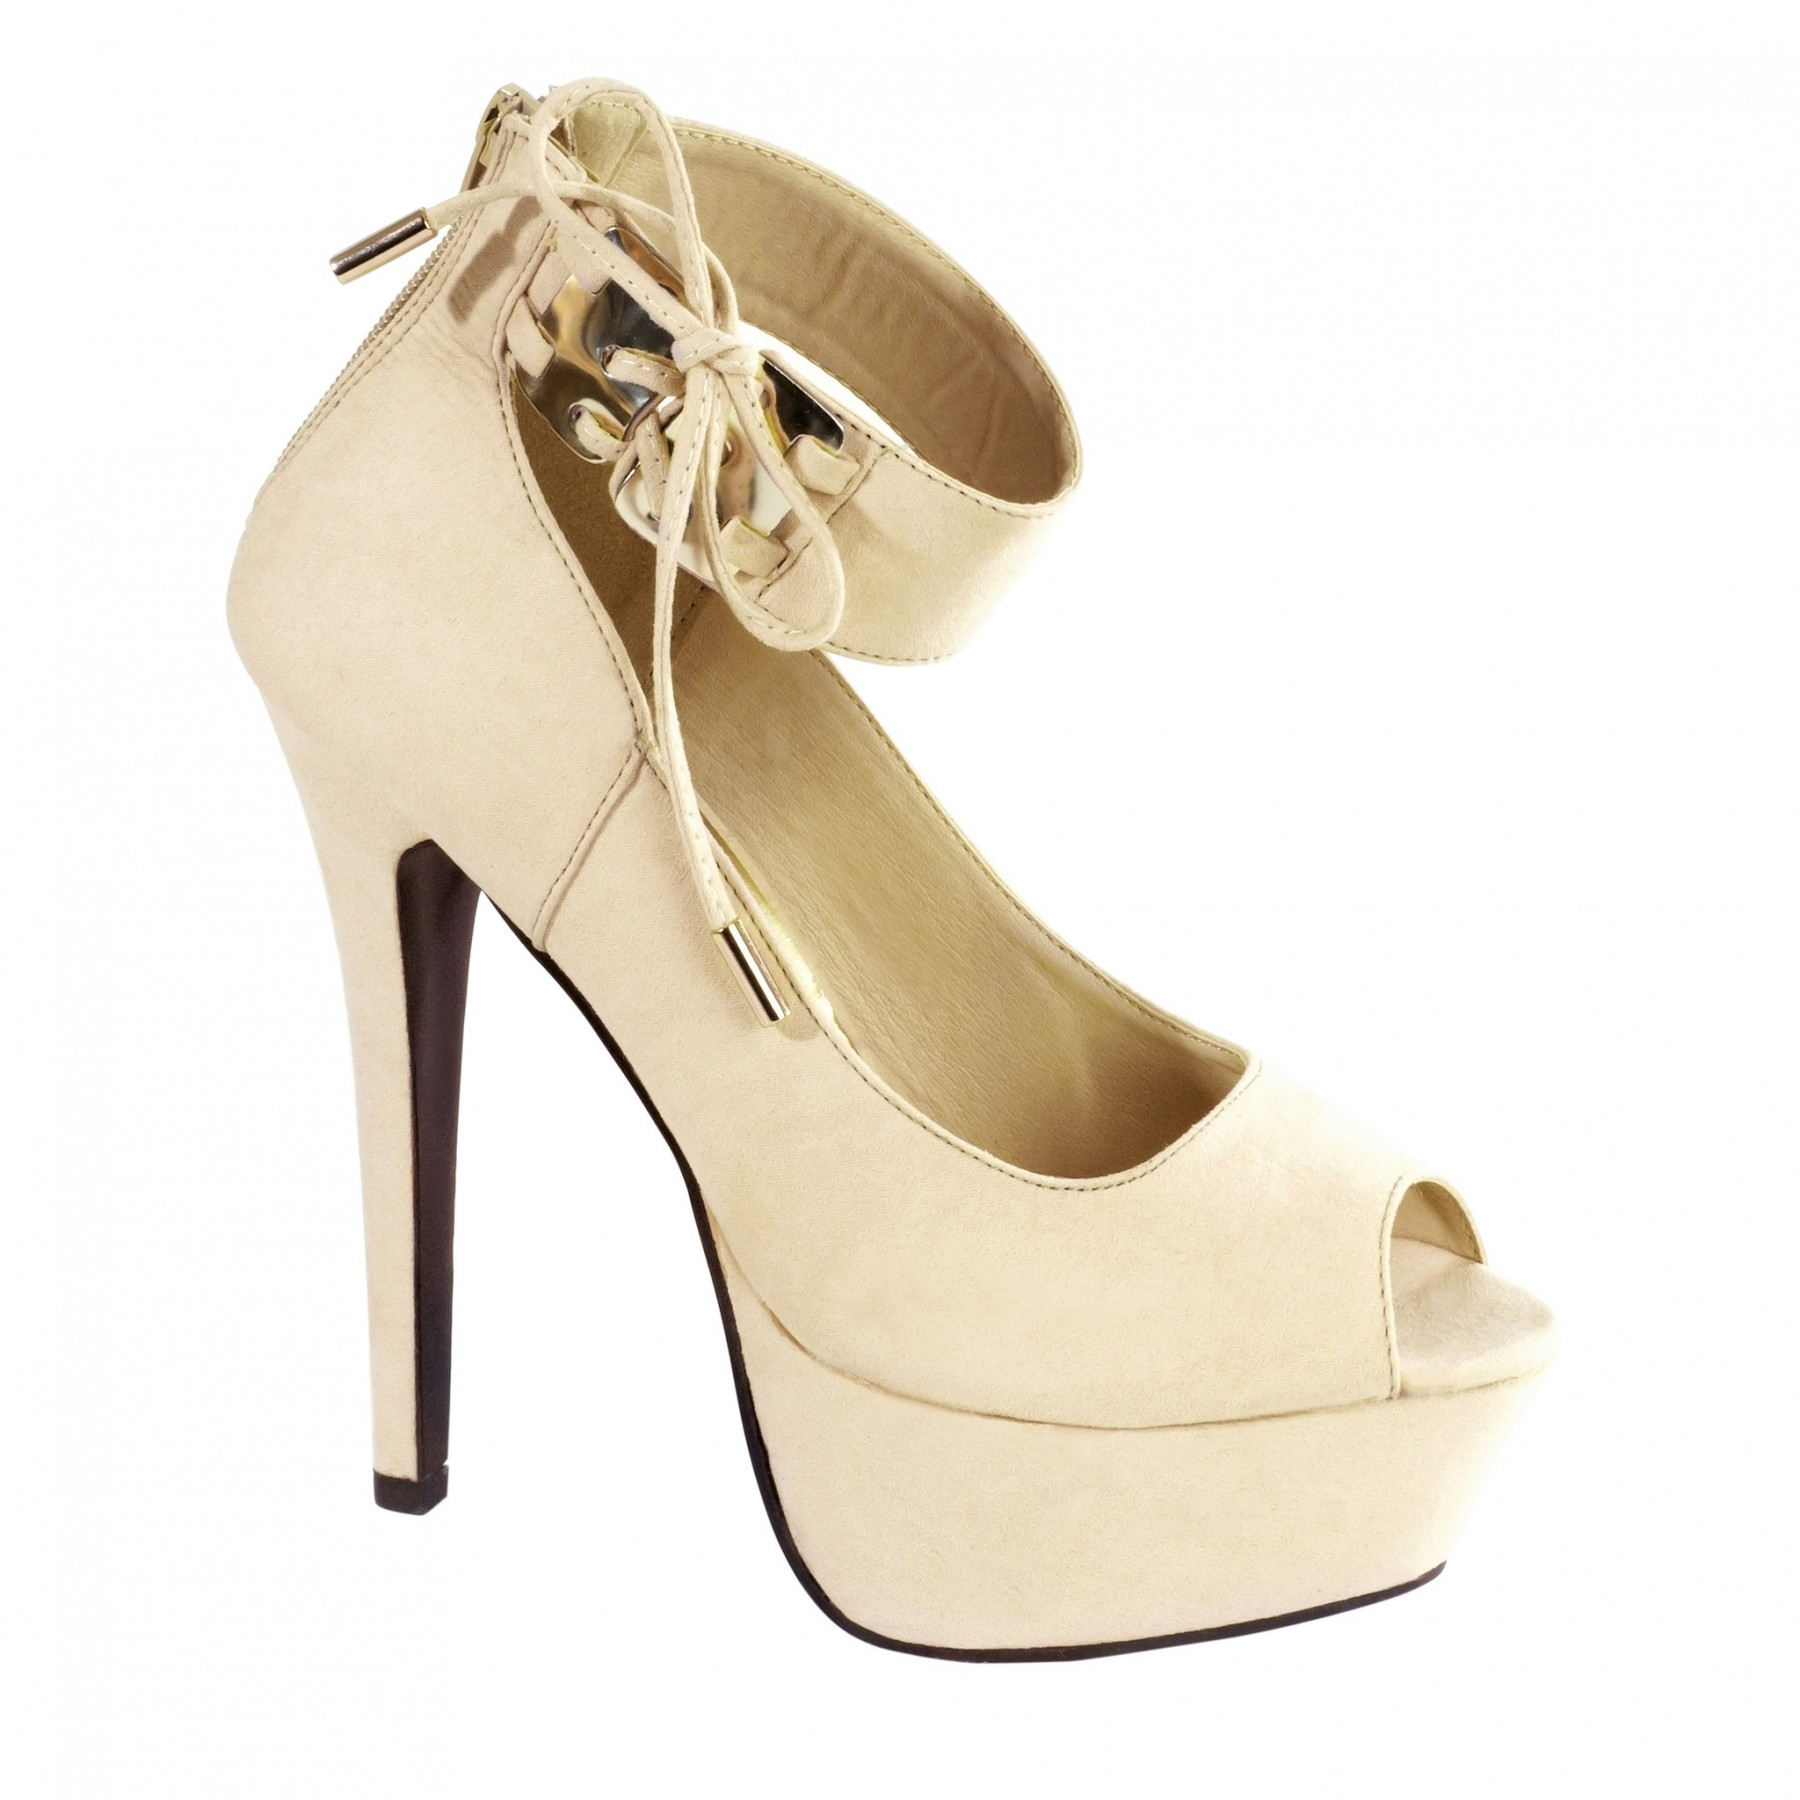 Women's Beige Arena 6-inch Platform Pump with Shining Gold-Tone Plate